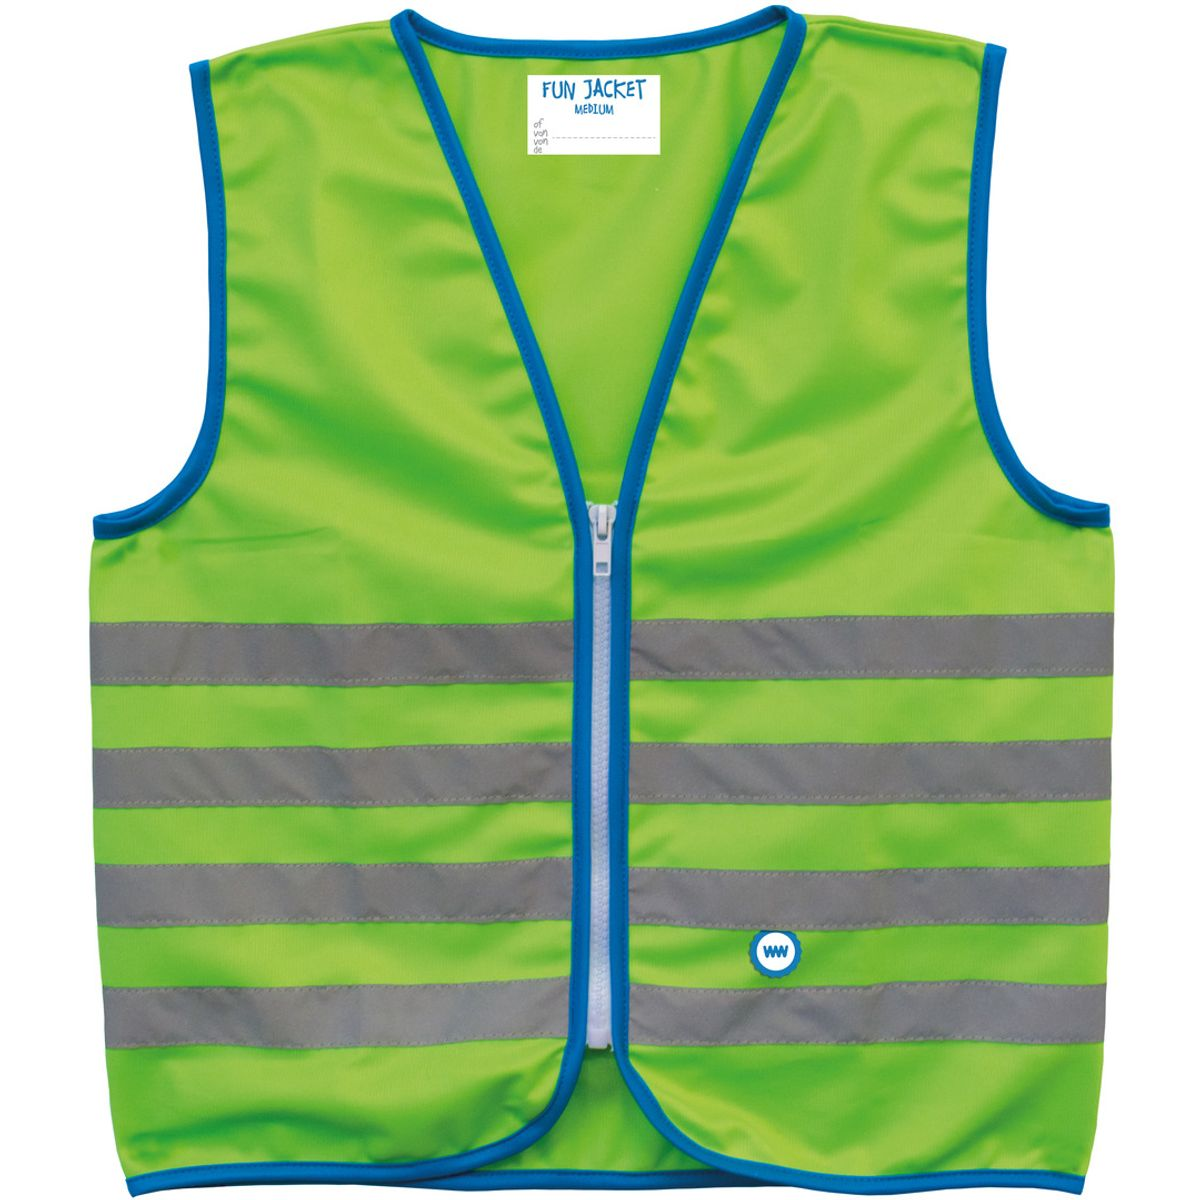 FUN JACKET children's reflective vest